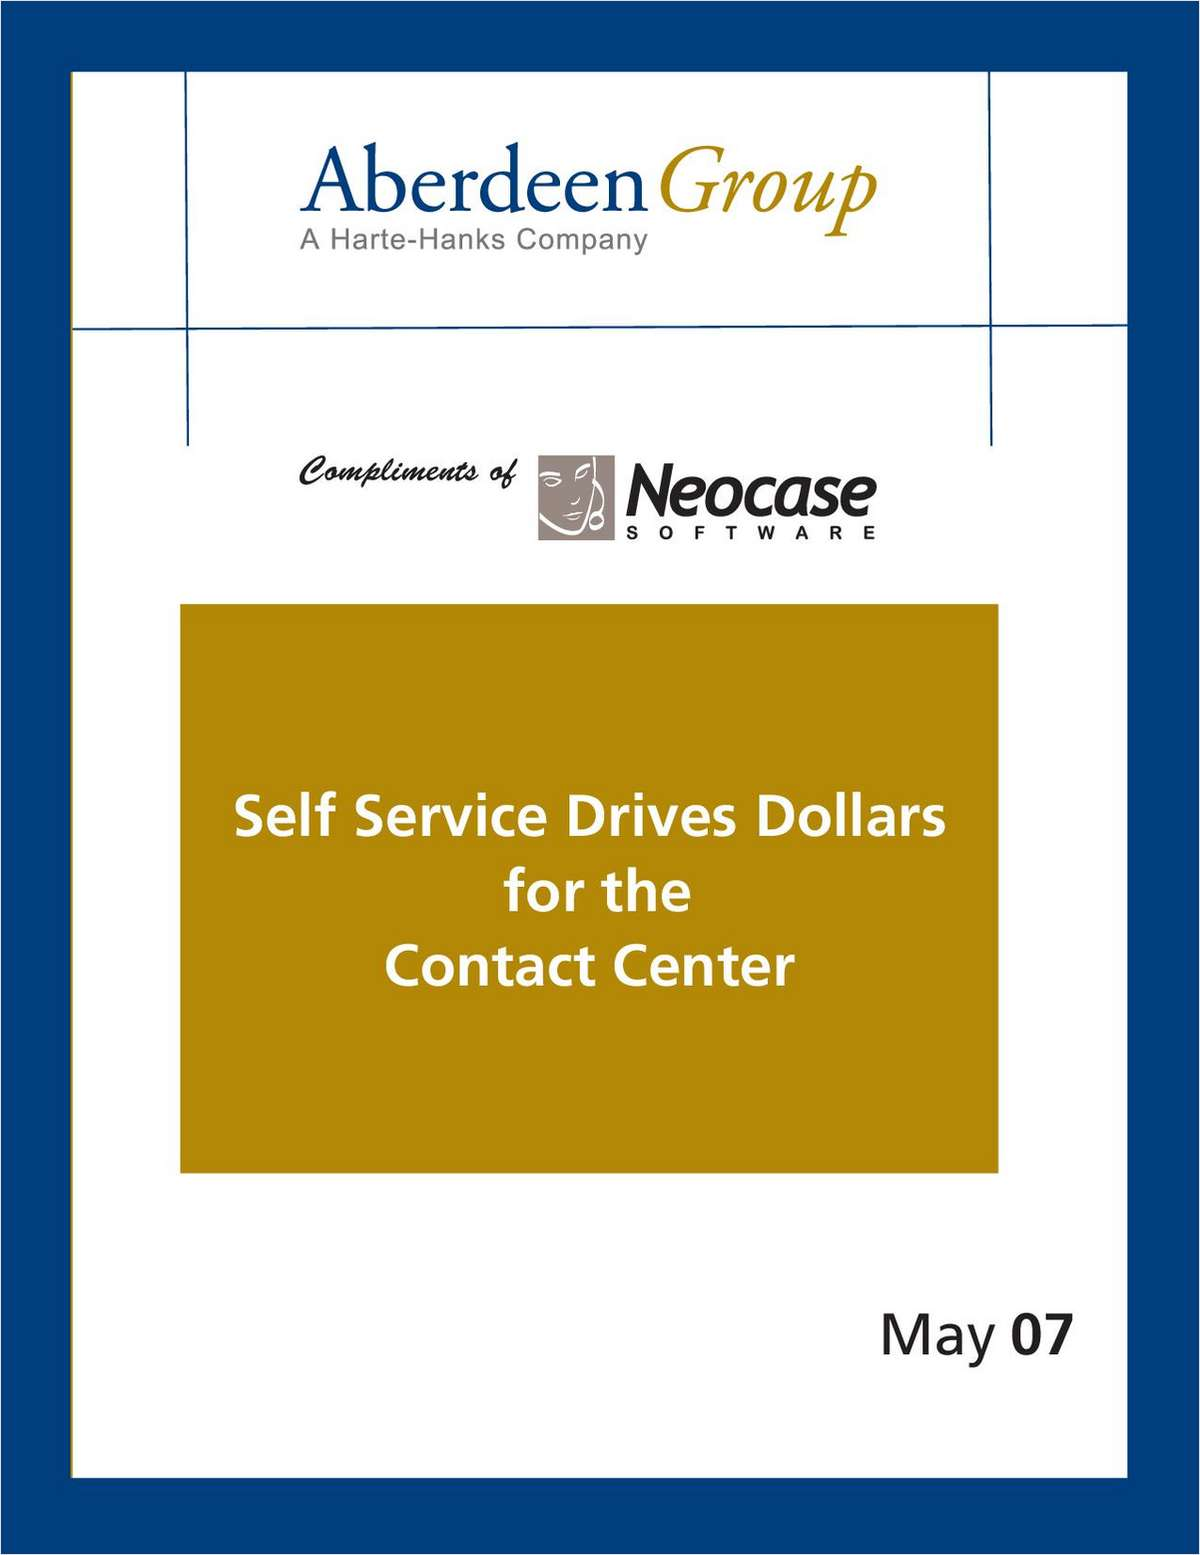 Self Service Drives Dollars for the Contact Center